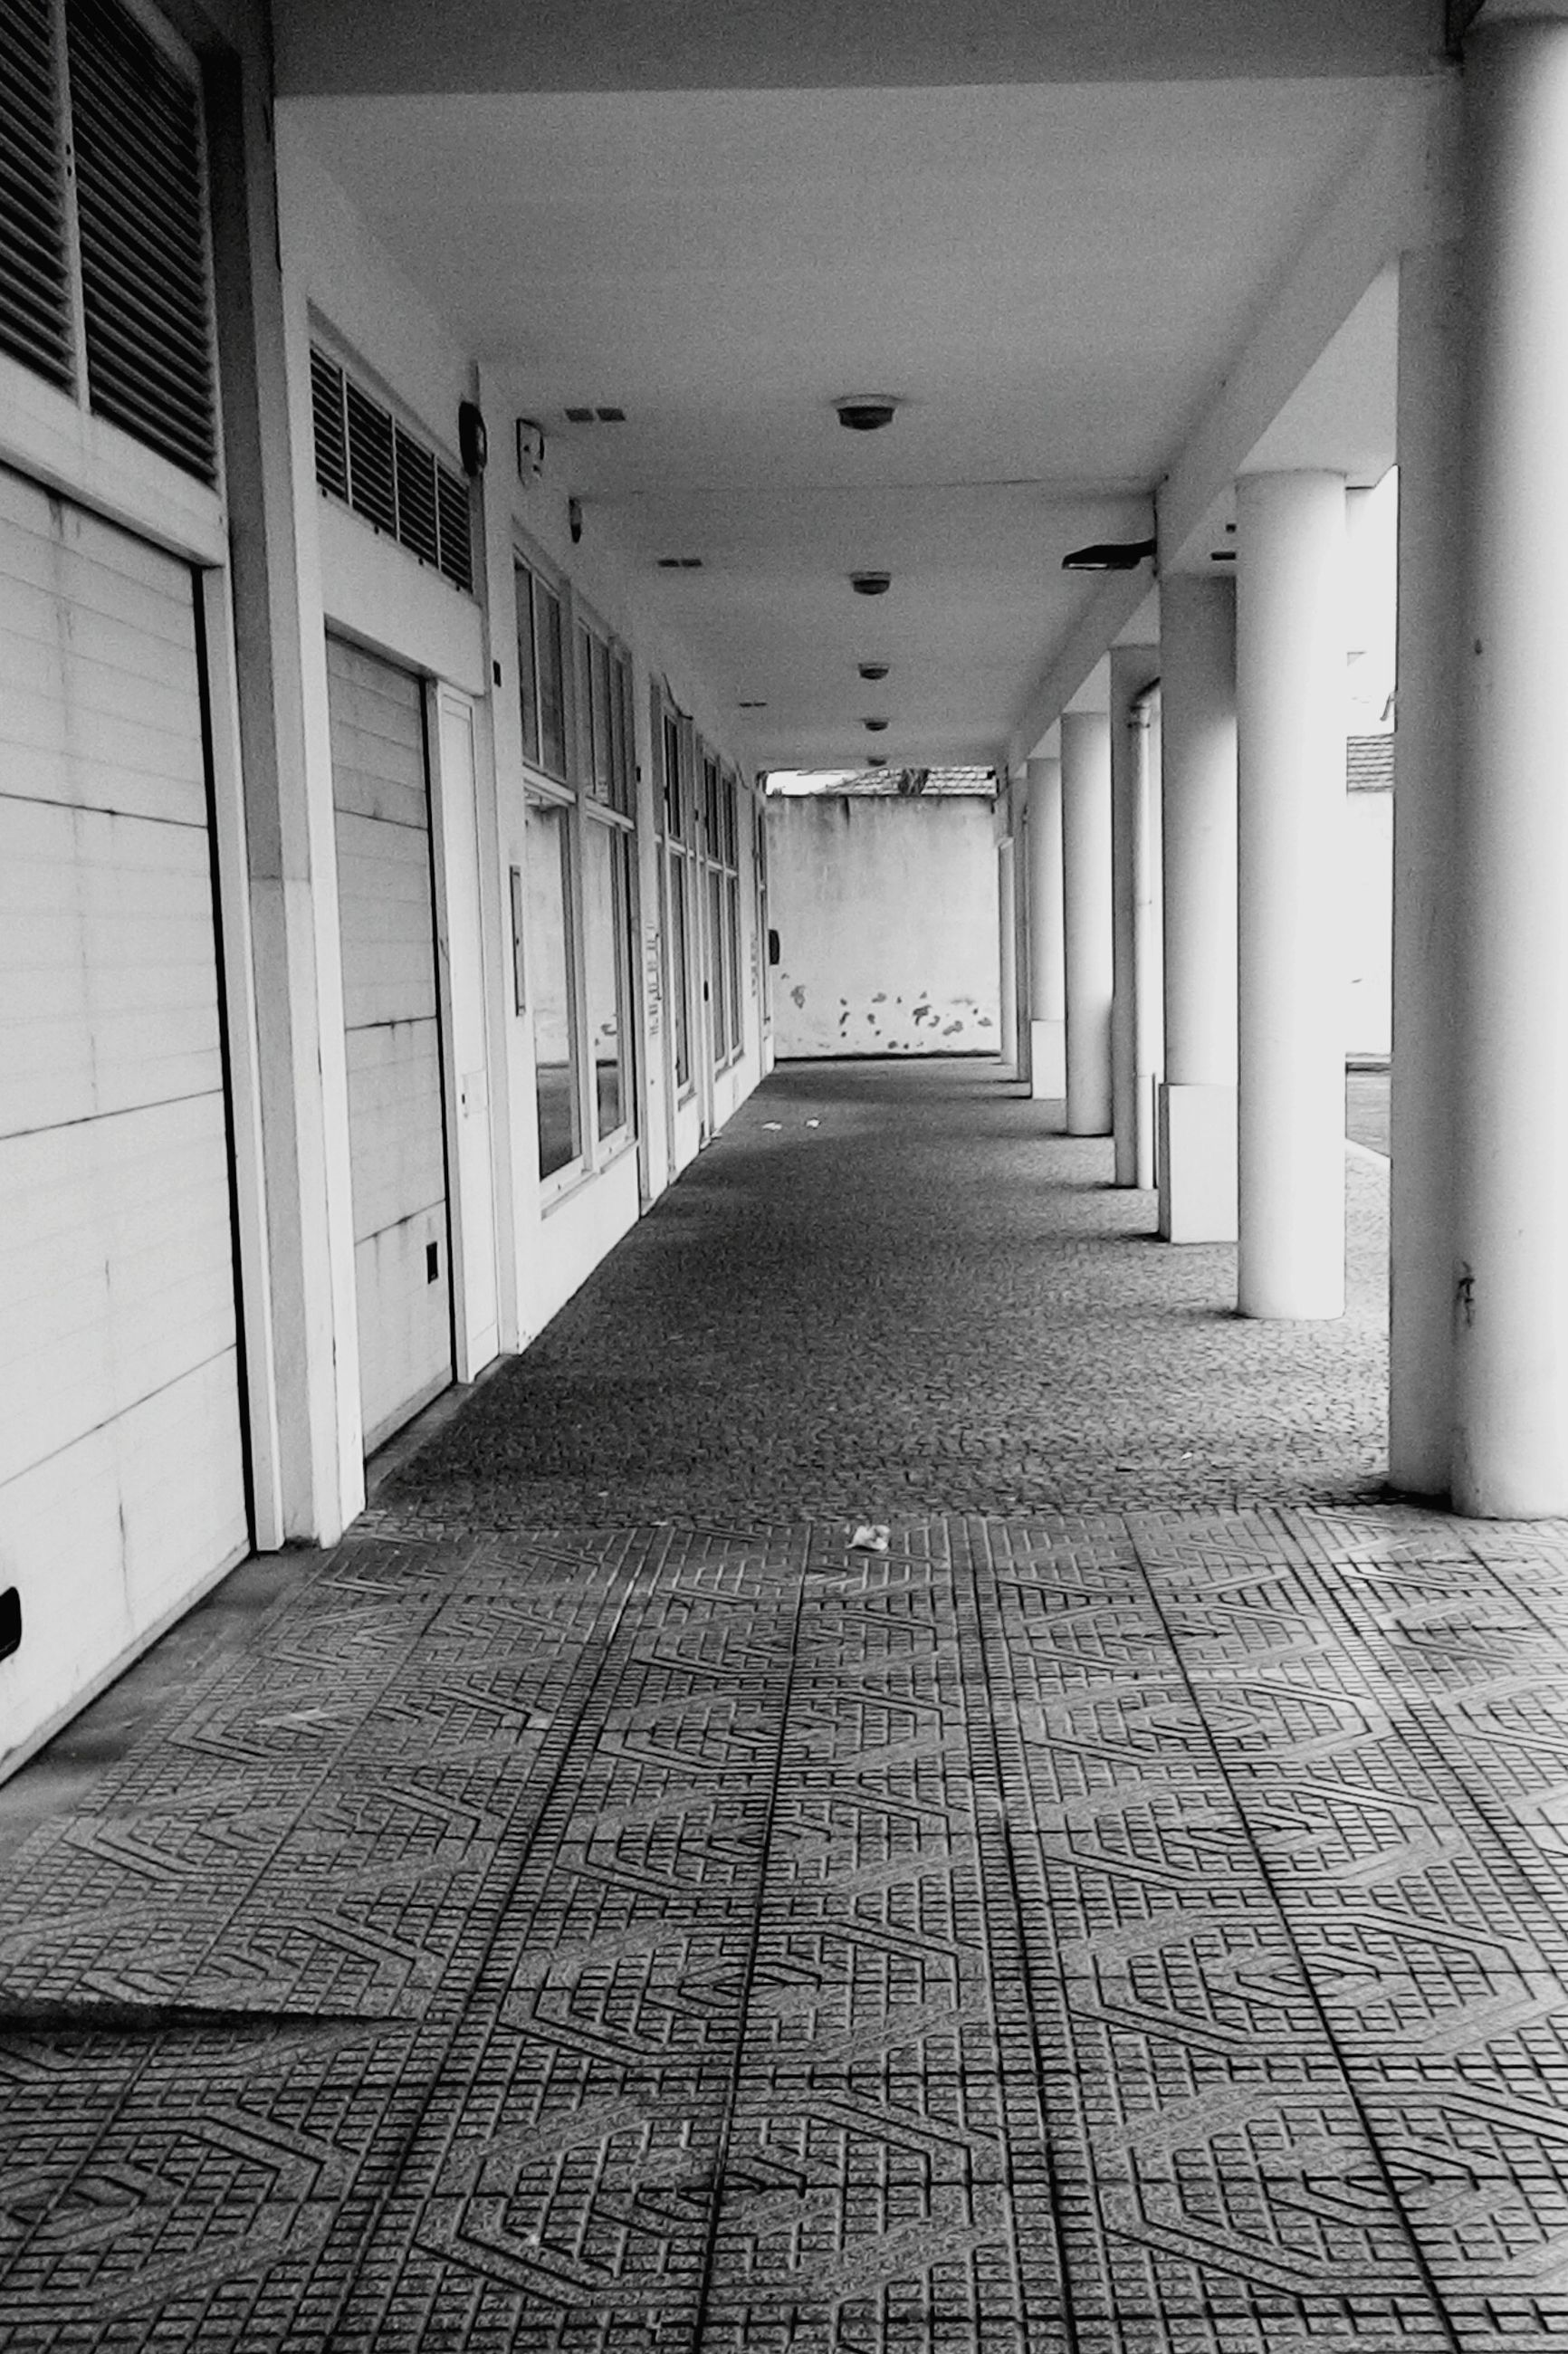 architecture, indoors, corridor, built structure, the way forward, ceiling, flooring, diminishing perspective, empty, tiled floor, building, absence, in a row, narrow, vanishing point, wall - building feature, walkway, architectural column, long, floor